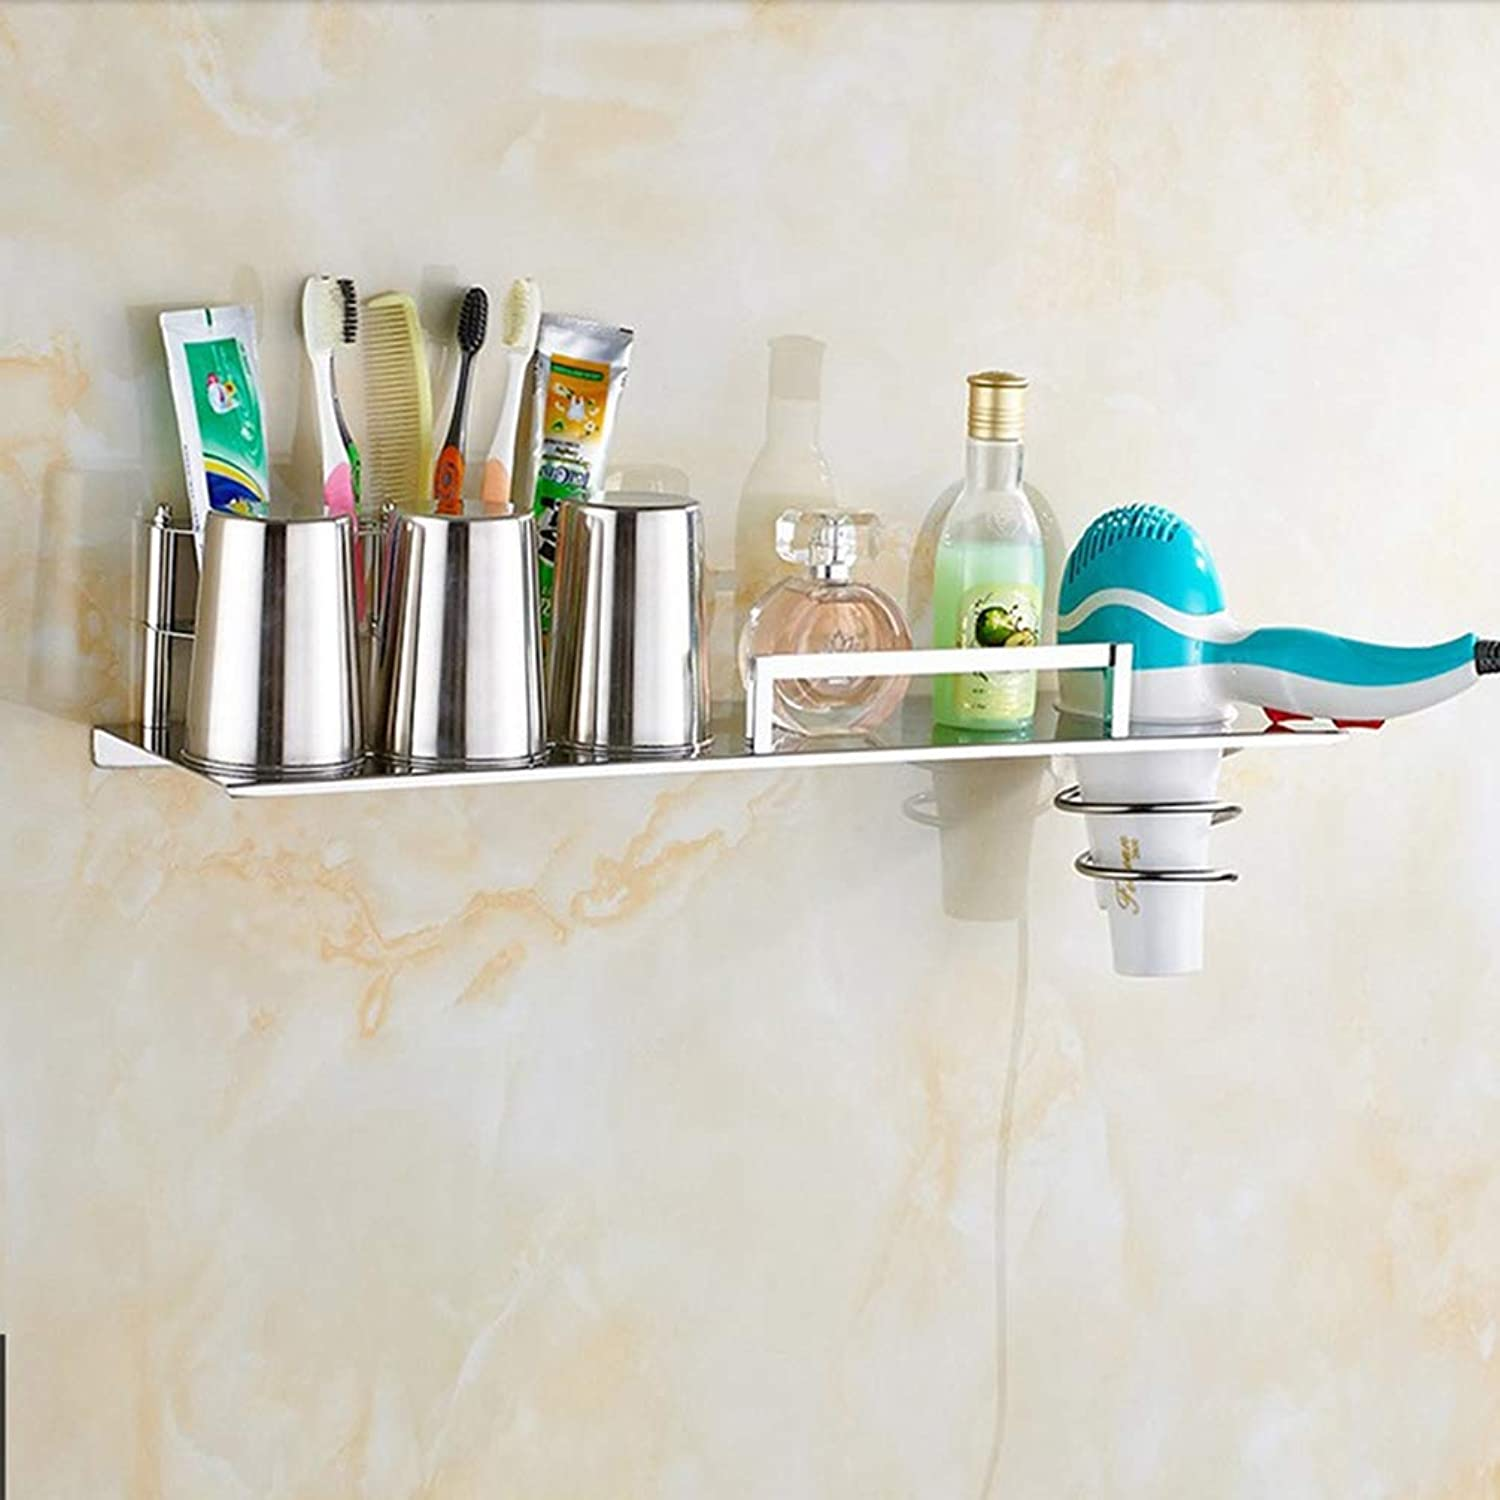 LUDSUY Bathroom accessories304 Stainless Steel Bathroom Toothbrush Holder Hair Multifunctional Rack with The Rack Bar with Rack Cup with A Hook, B